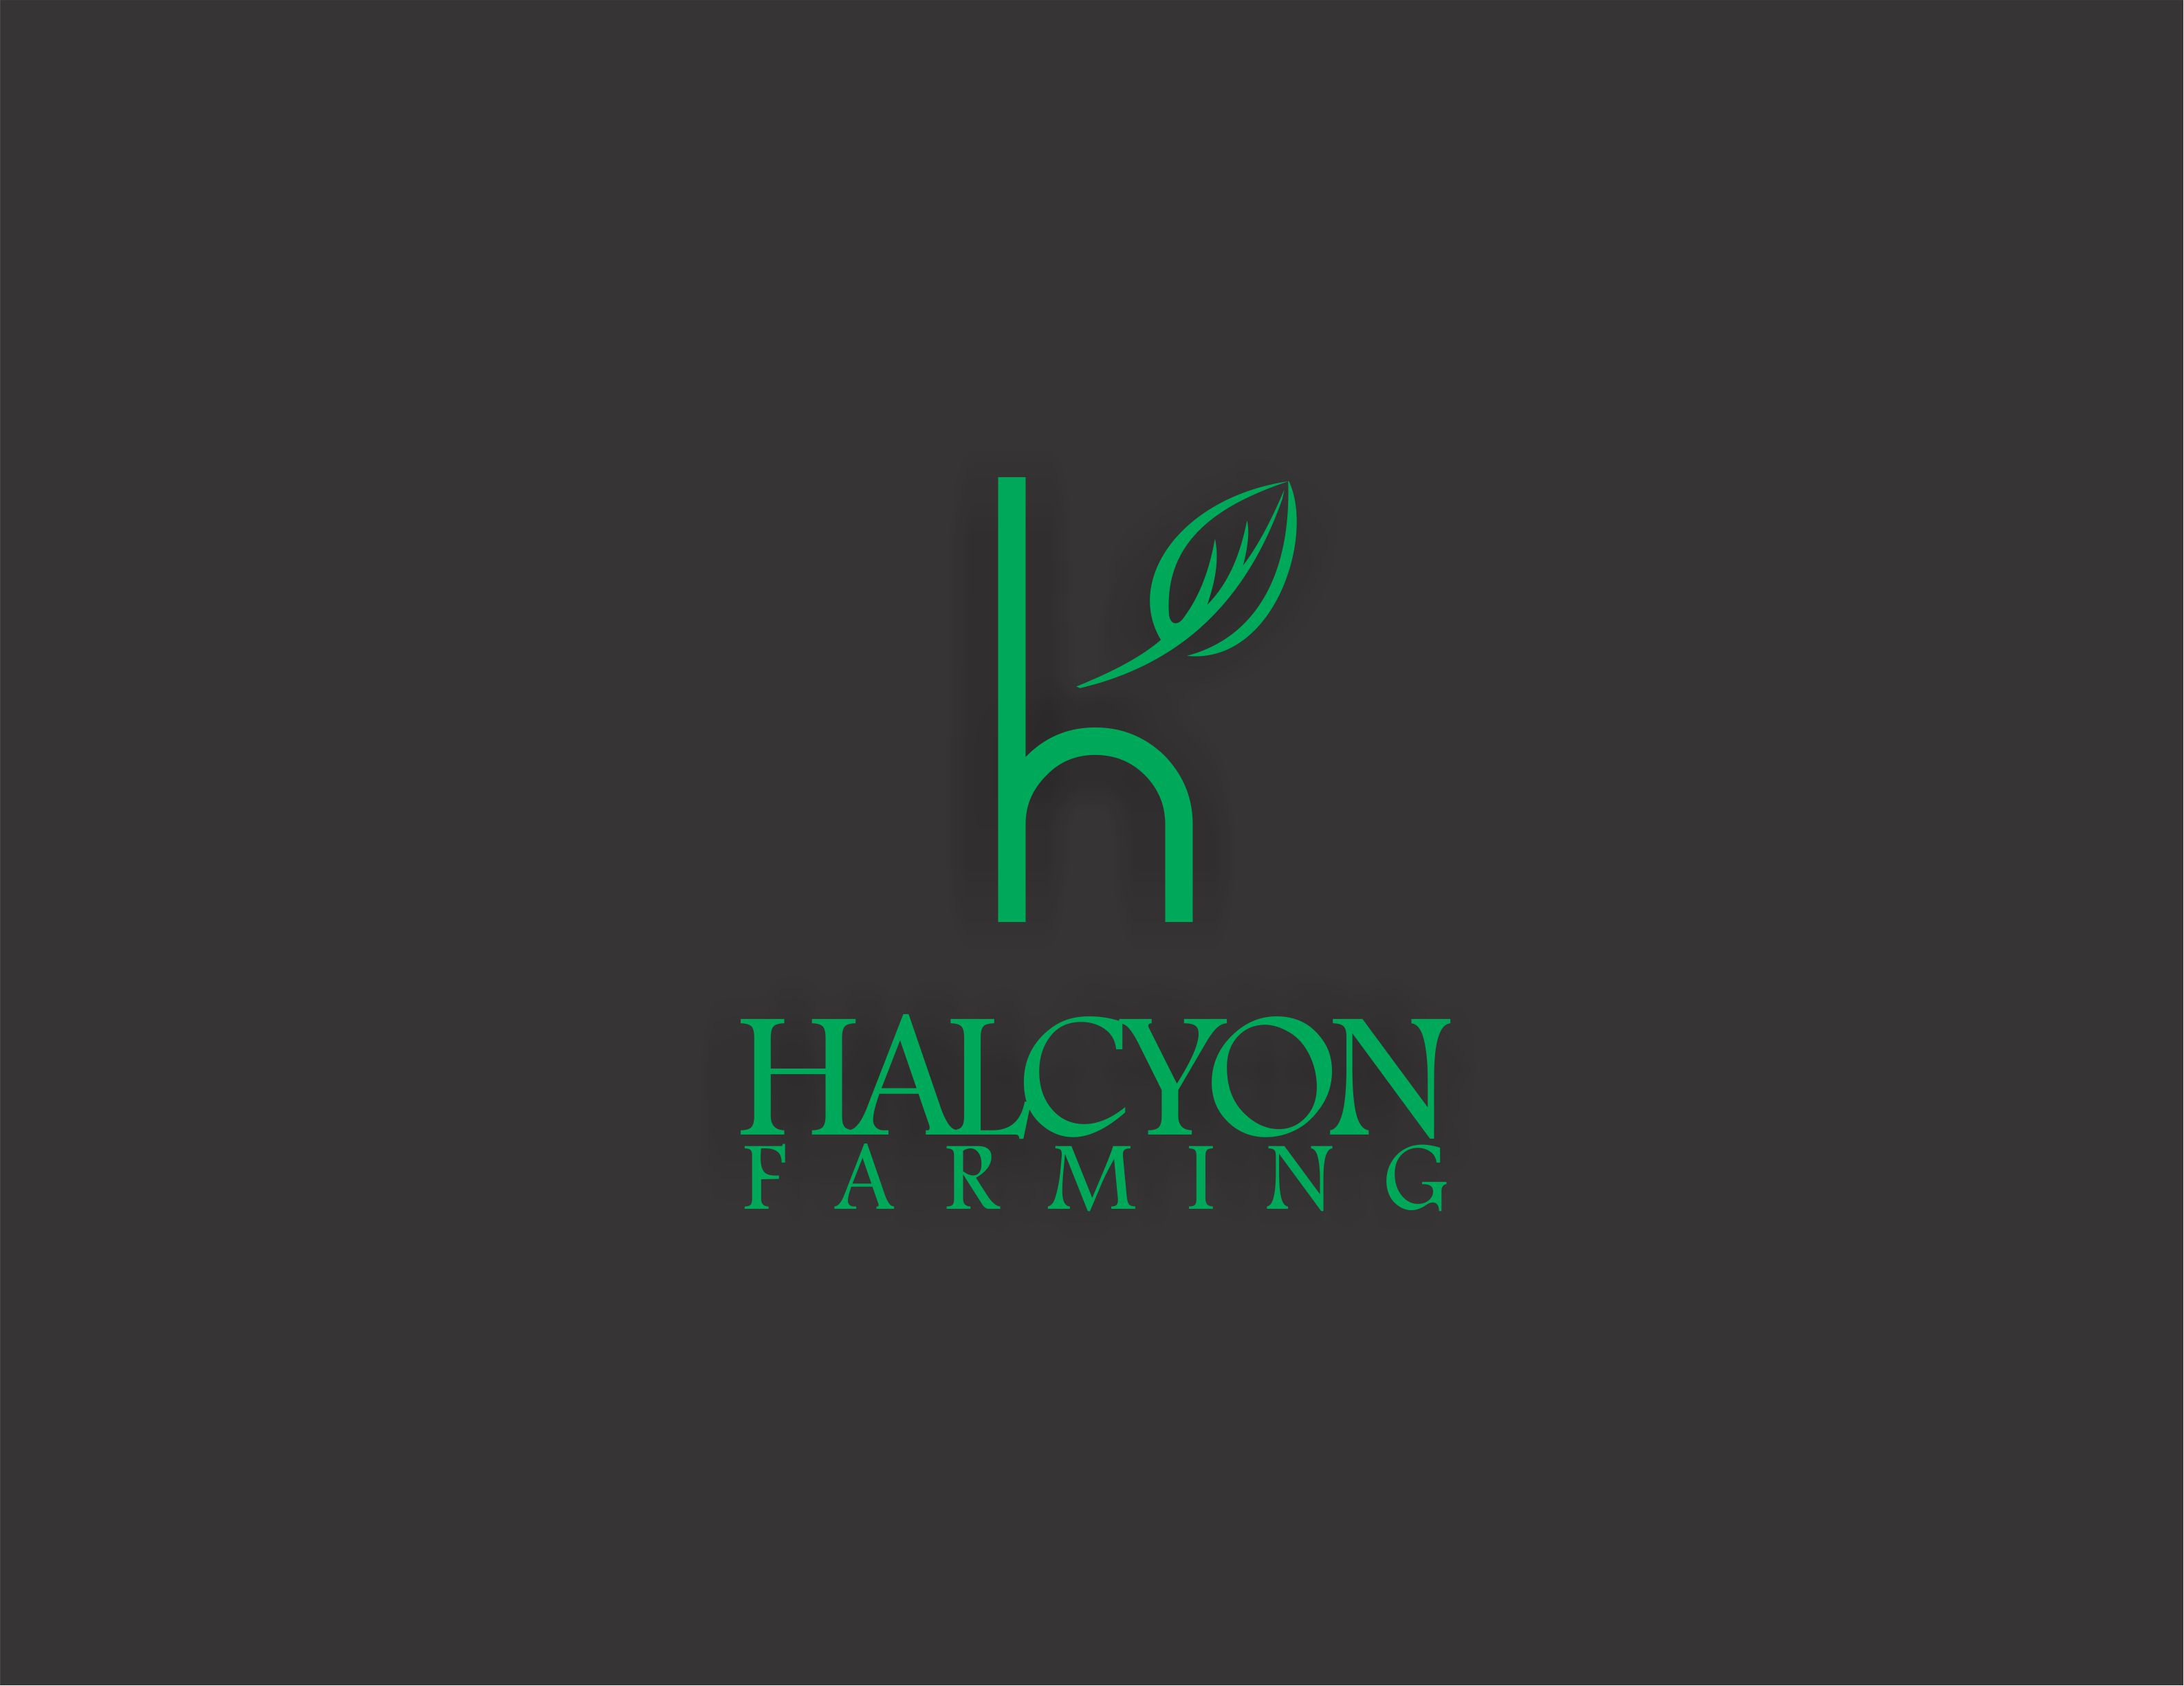 Logo Design by Dian Jatmiko - Entry No. 107 in the Logo Design Contest Creative Logo Design for Halcyon Farming.